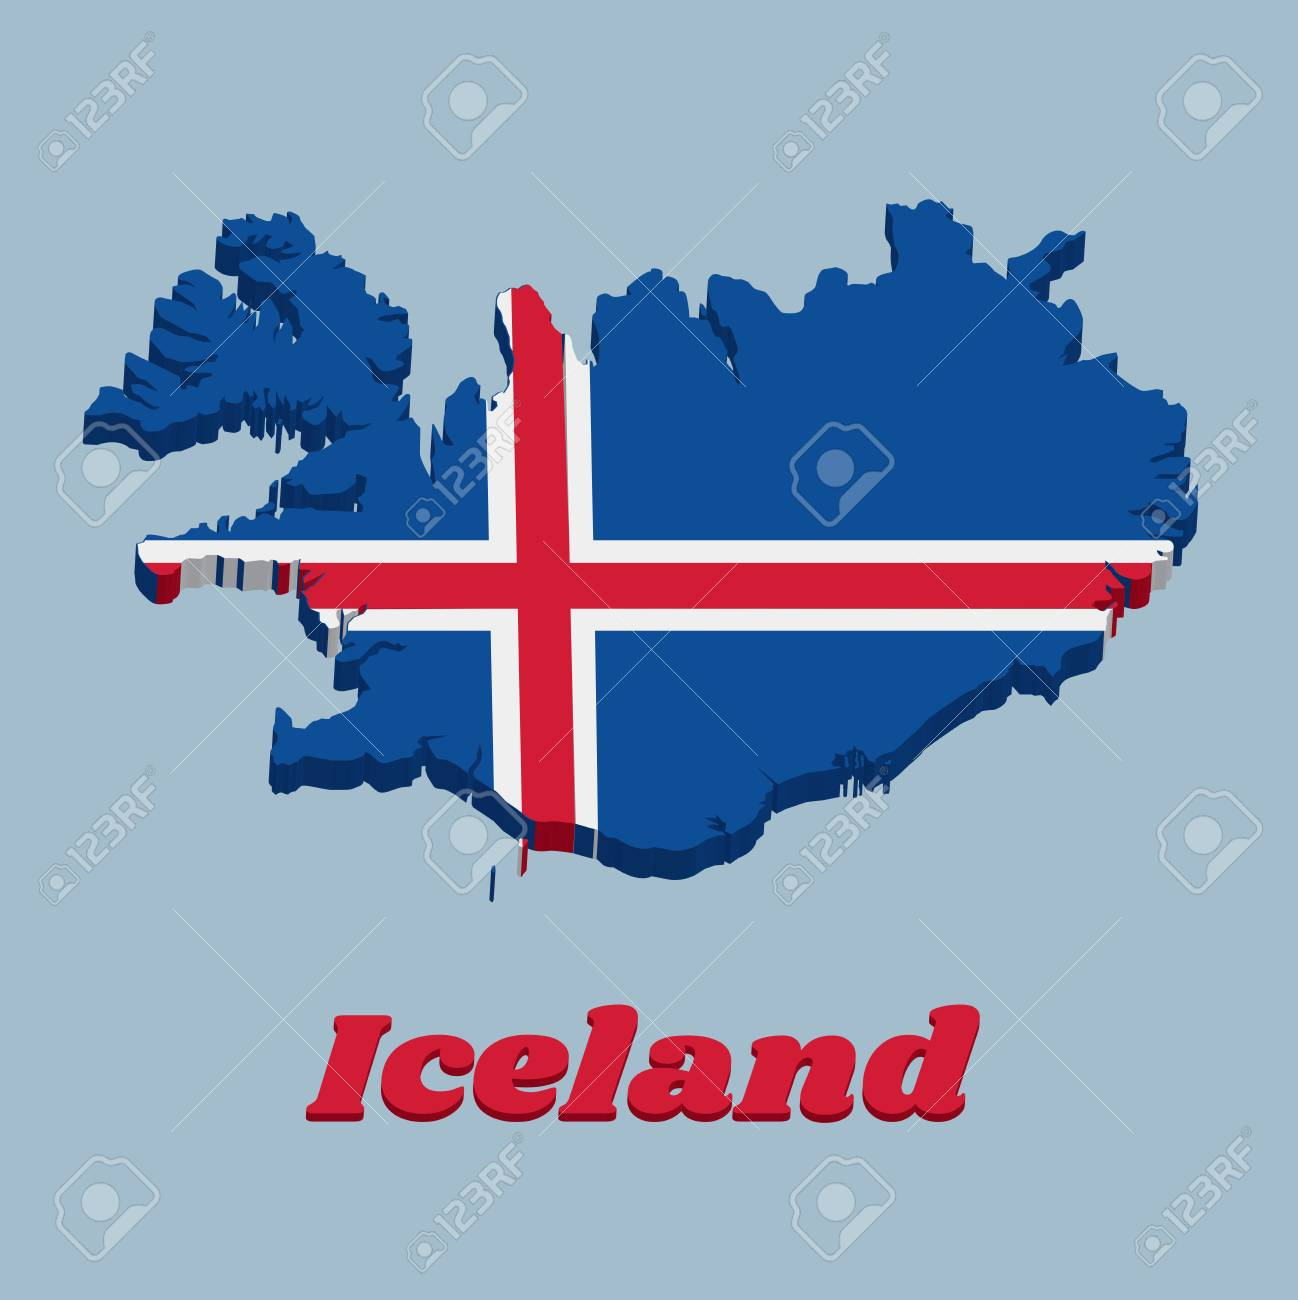 3D Map outline and flag of Iceland, it is blue as the sky with.. Iceland World Map Outline on burma map outline, south pacific islands map outline, norfolk island map outline, poland map outline, german states map outline, cape town south africa map outline, benin map outline, slovakia map outline, greenland map outline, cyprus map outline, the usa map outline, gambia map outline, macau map outline, st croix map outline, mauritania map outline, bangladesh map outline, holy roman empire map outline, far east map outline, russia map outline, aruba map outline,